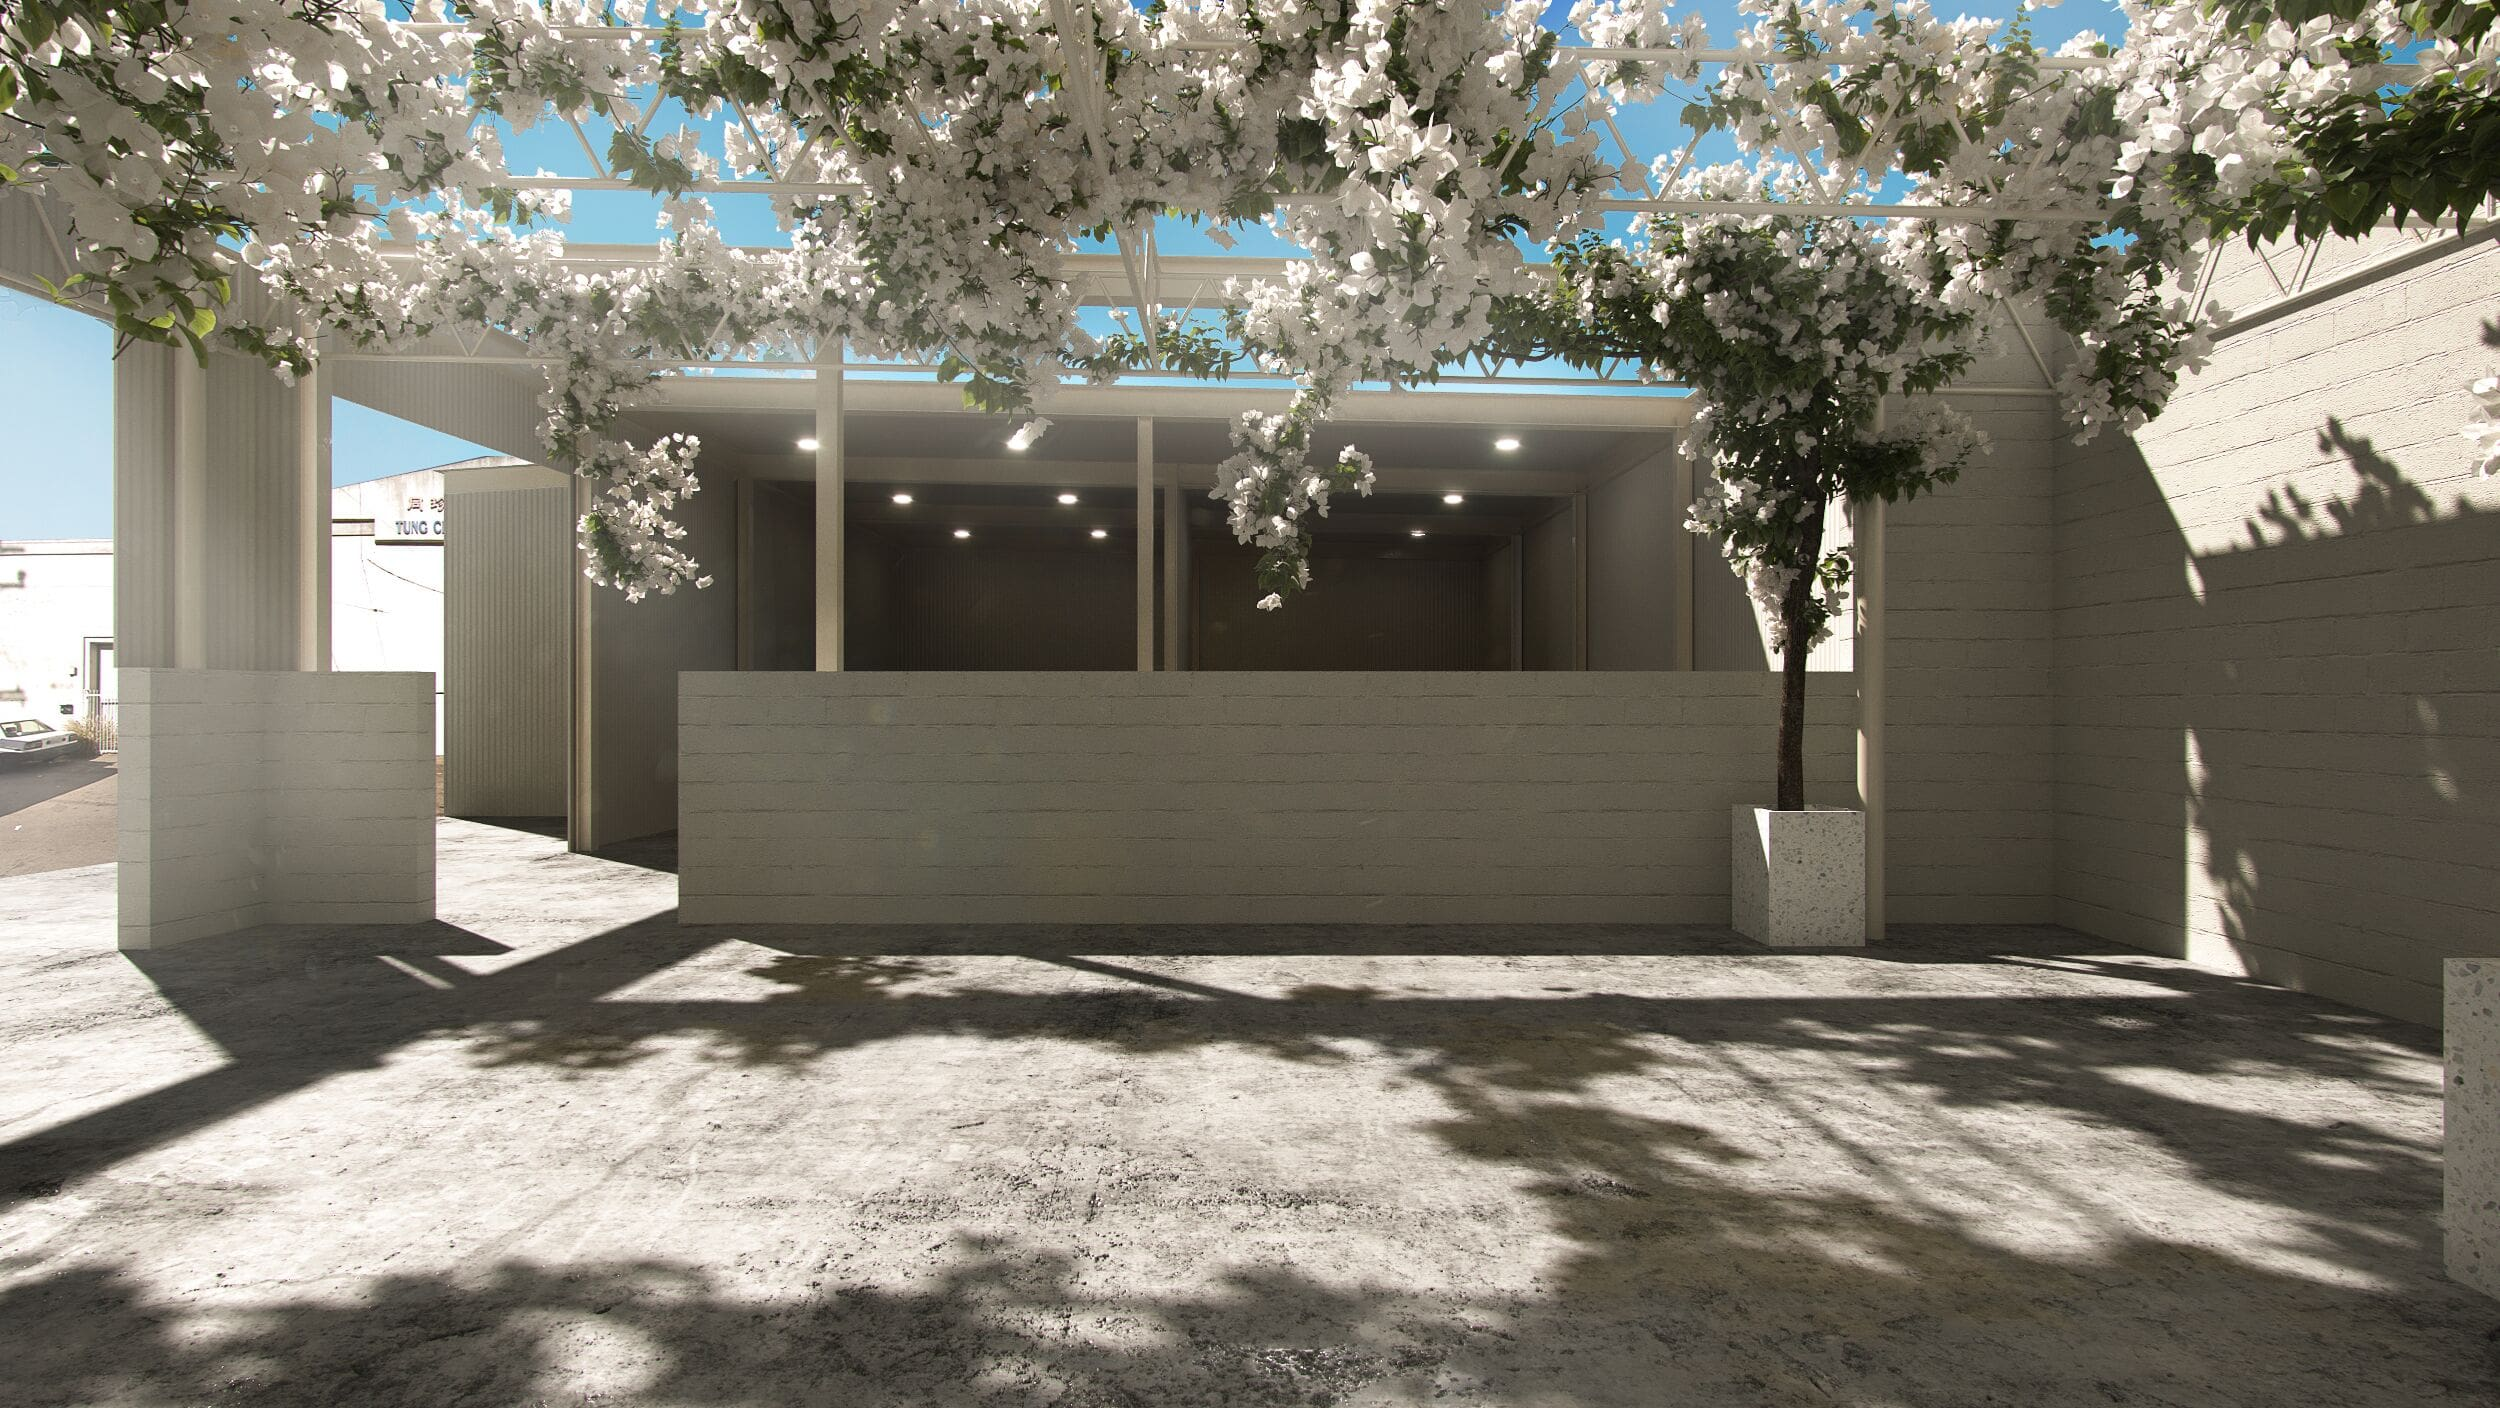 This is a visual rendering of the uncovered veranda space looking into the covered space.